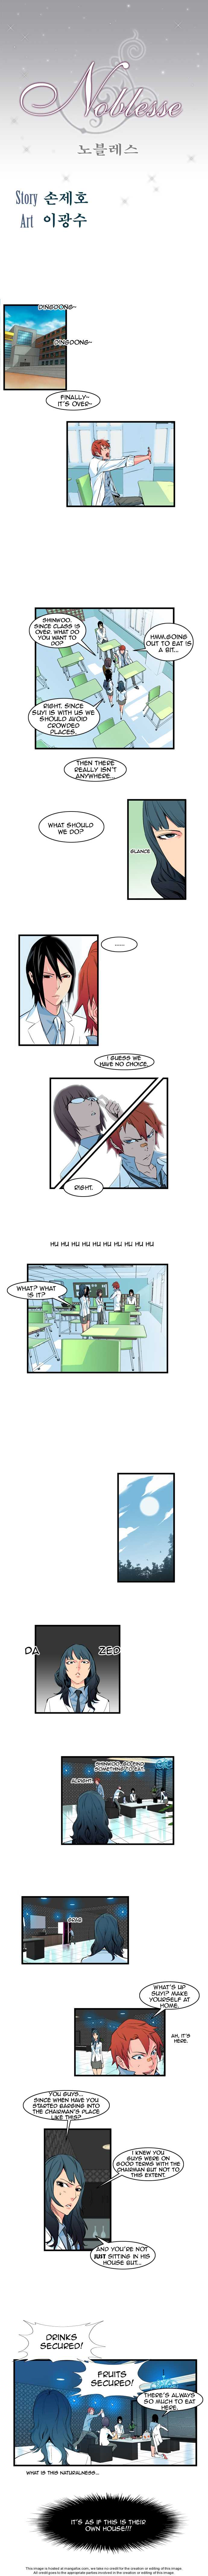 Noblesse 97 Page 1